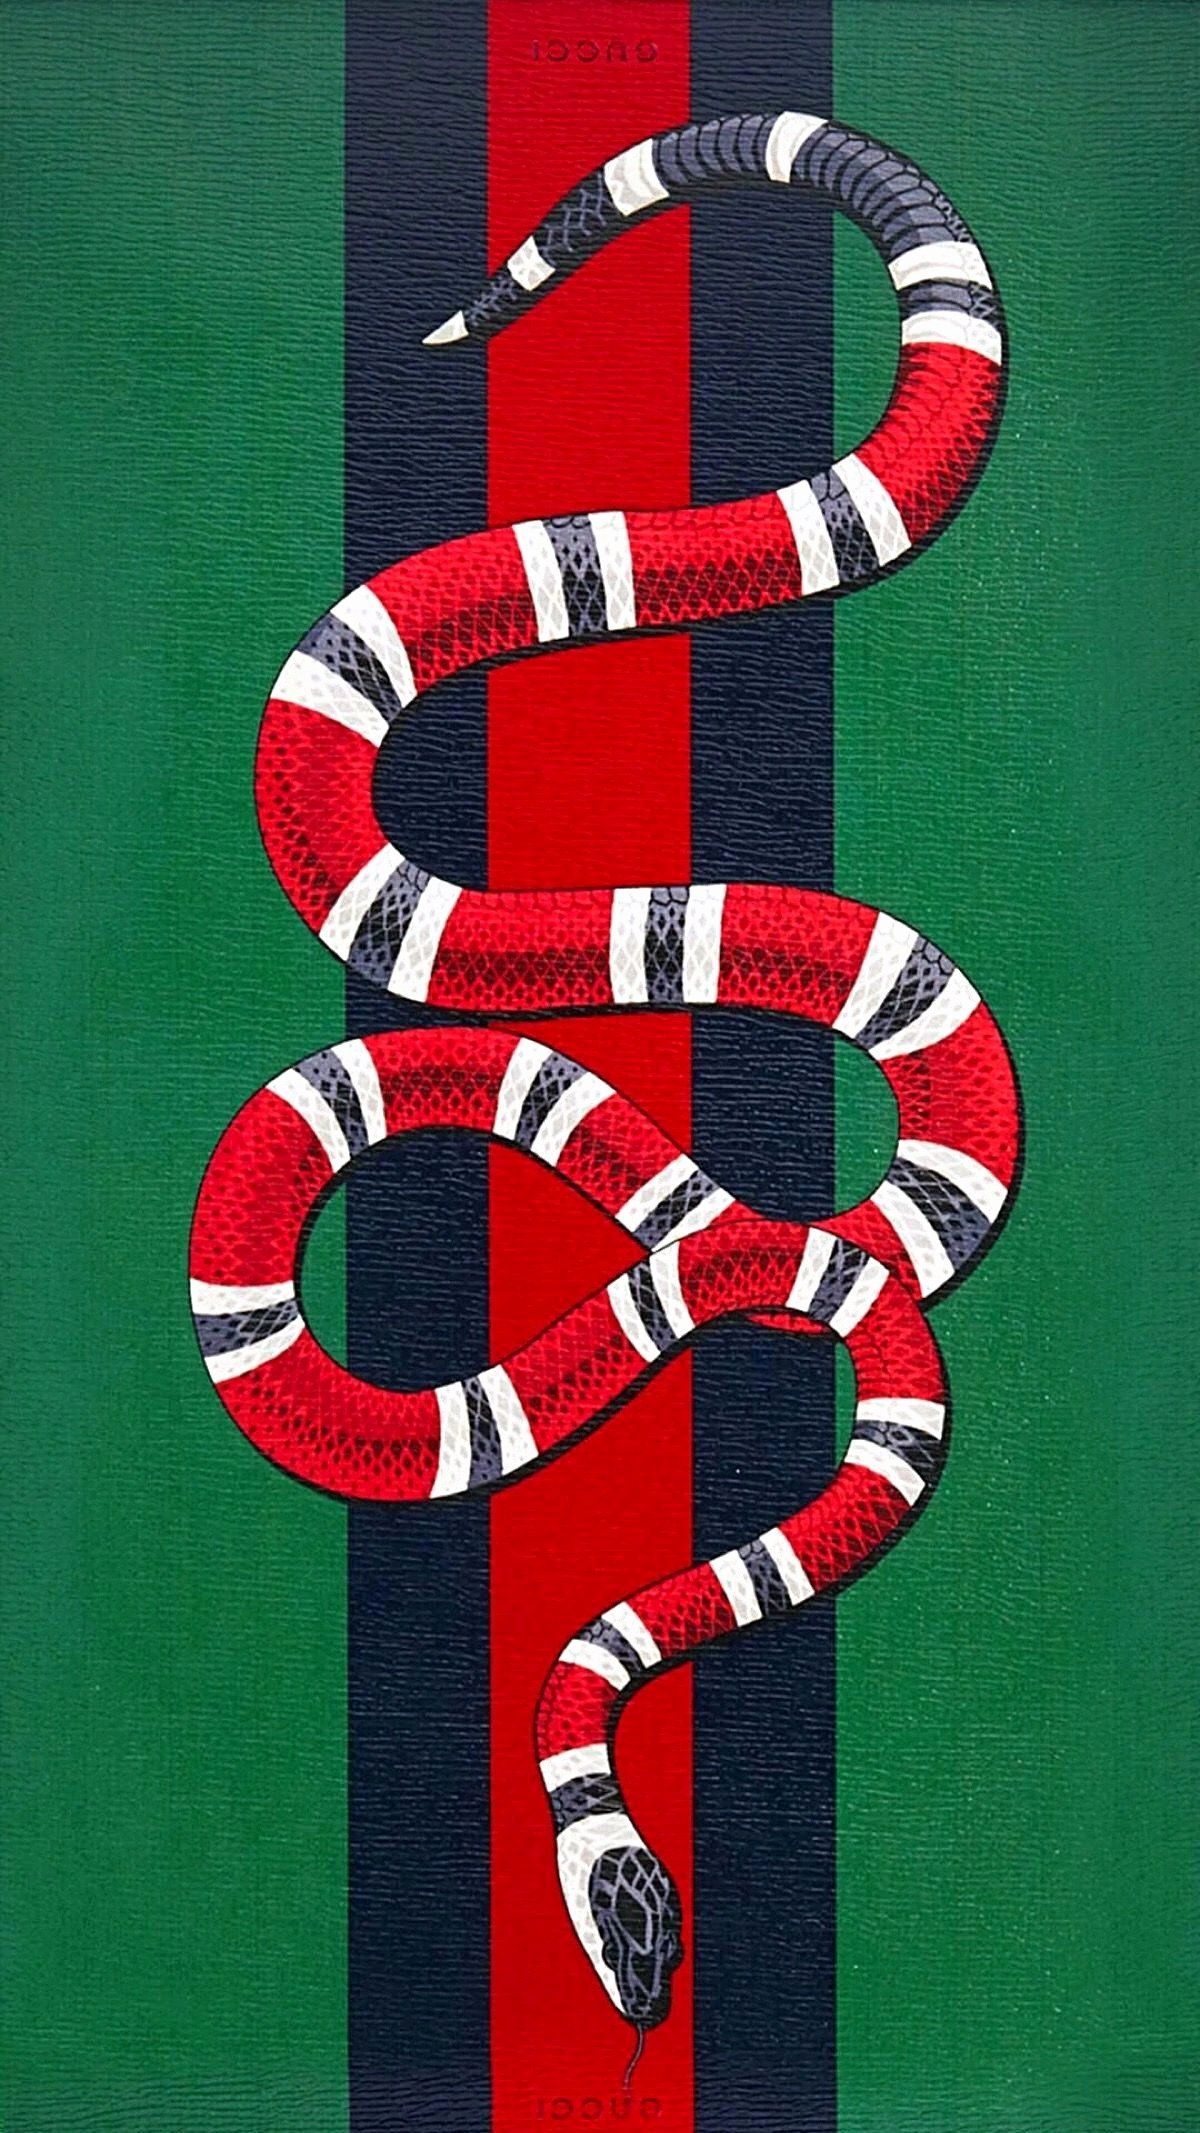 False Coloring In Animals Inspirational Unique Number Endangered Animals Endangered Species And In 2020 Gucci Wallpaper Iphone Crazy Wallpaper Snake Wallpaper